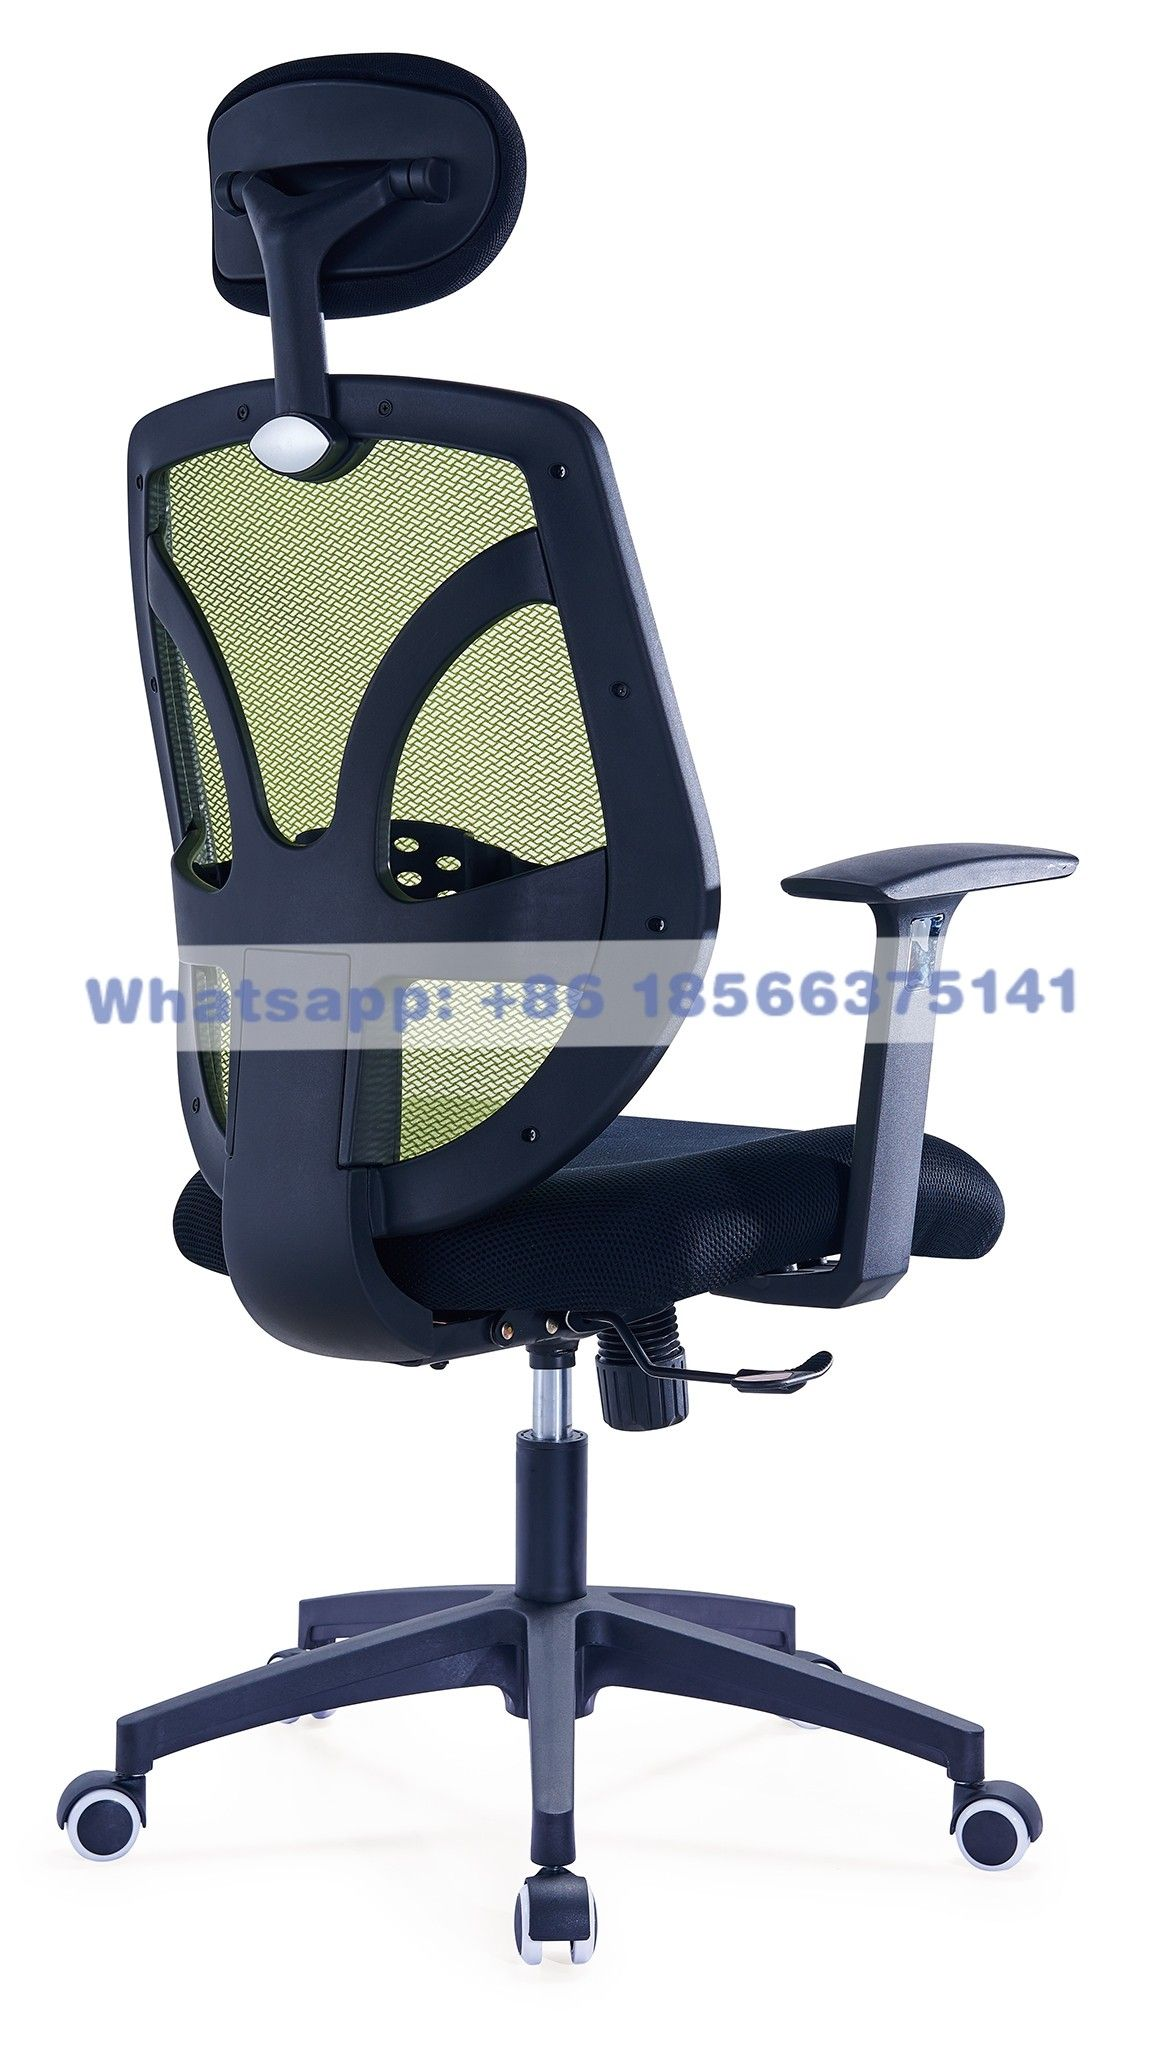 Chair Repair Pin By China Furniture On Office Chair Repair Chair Repair Chair